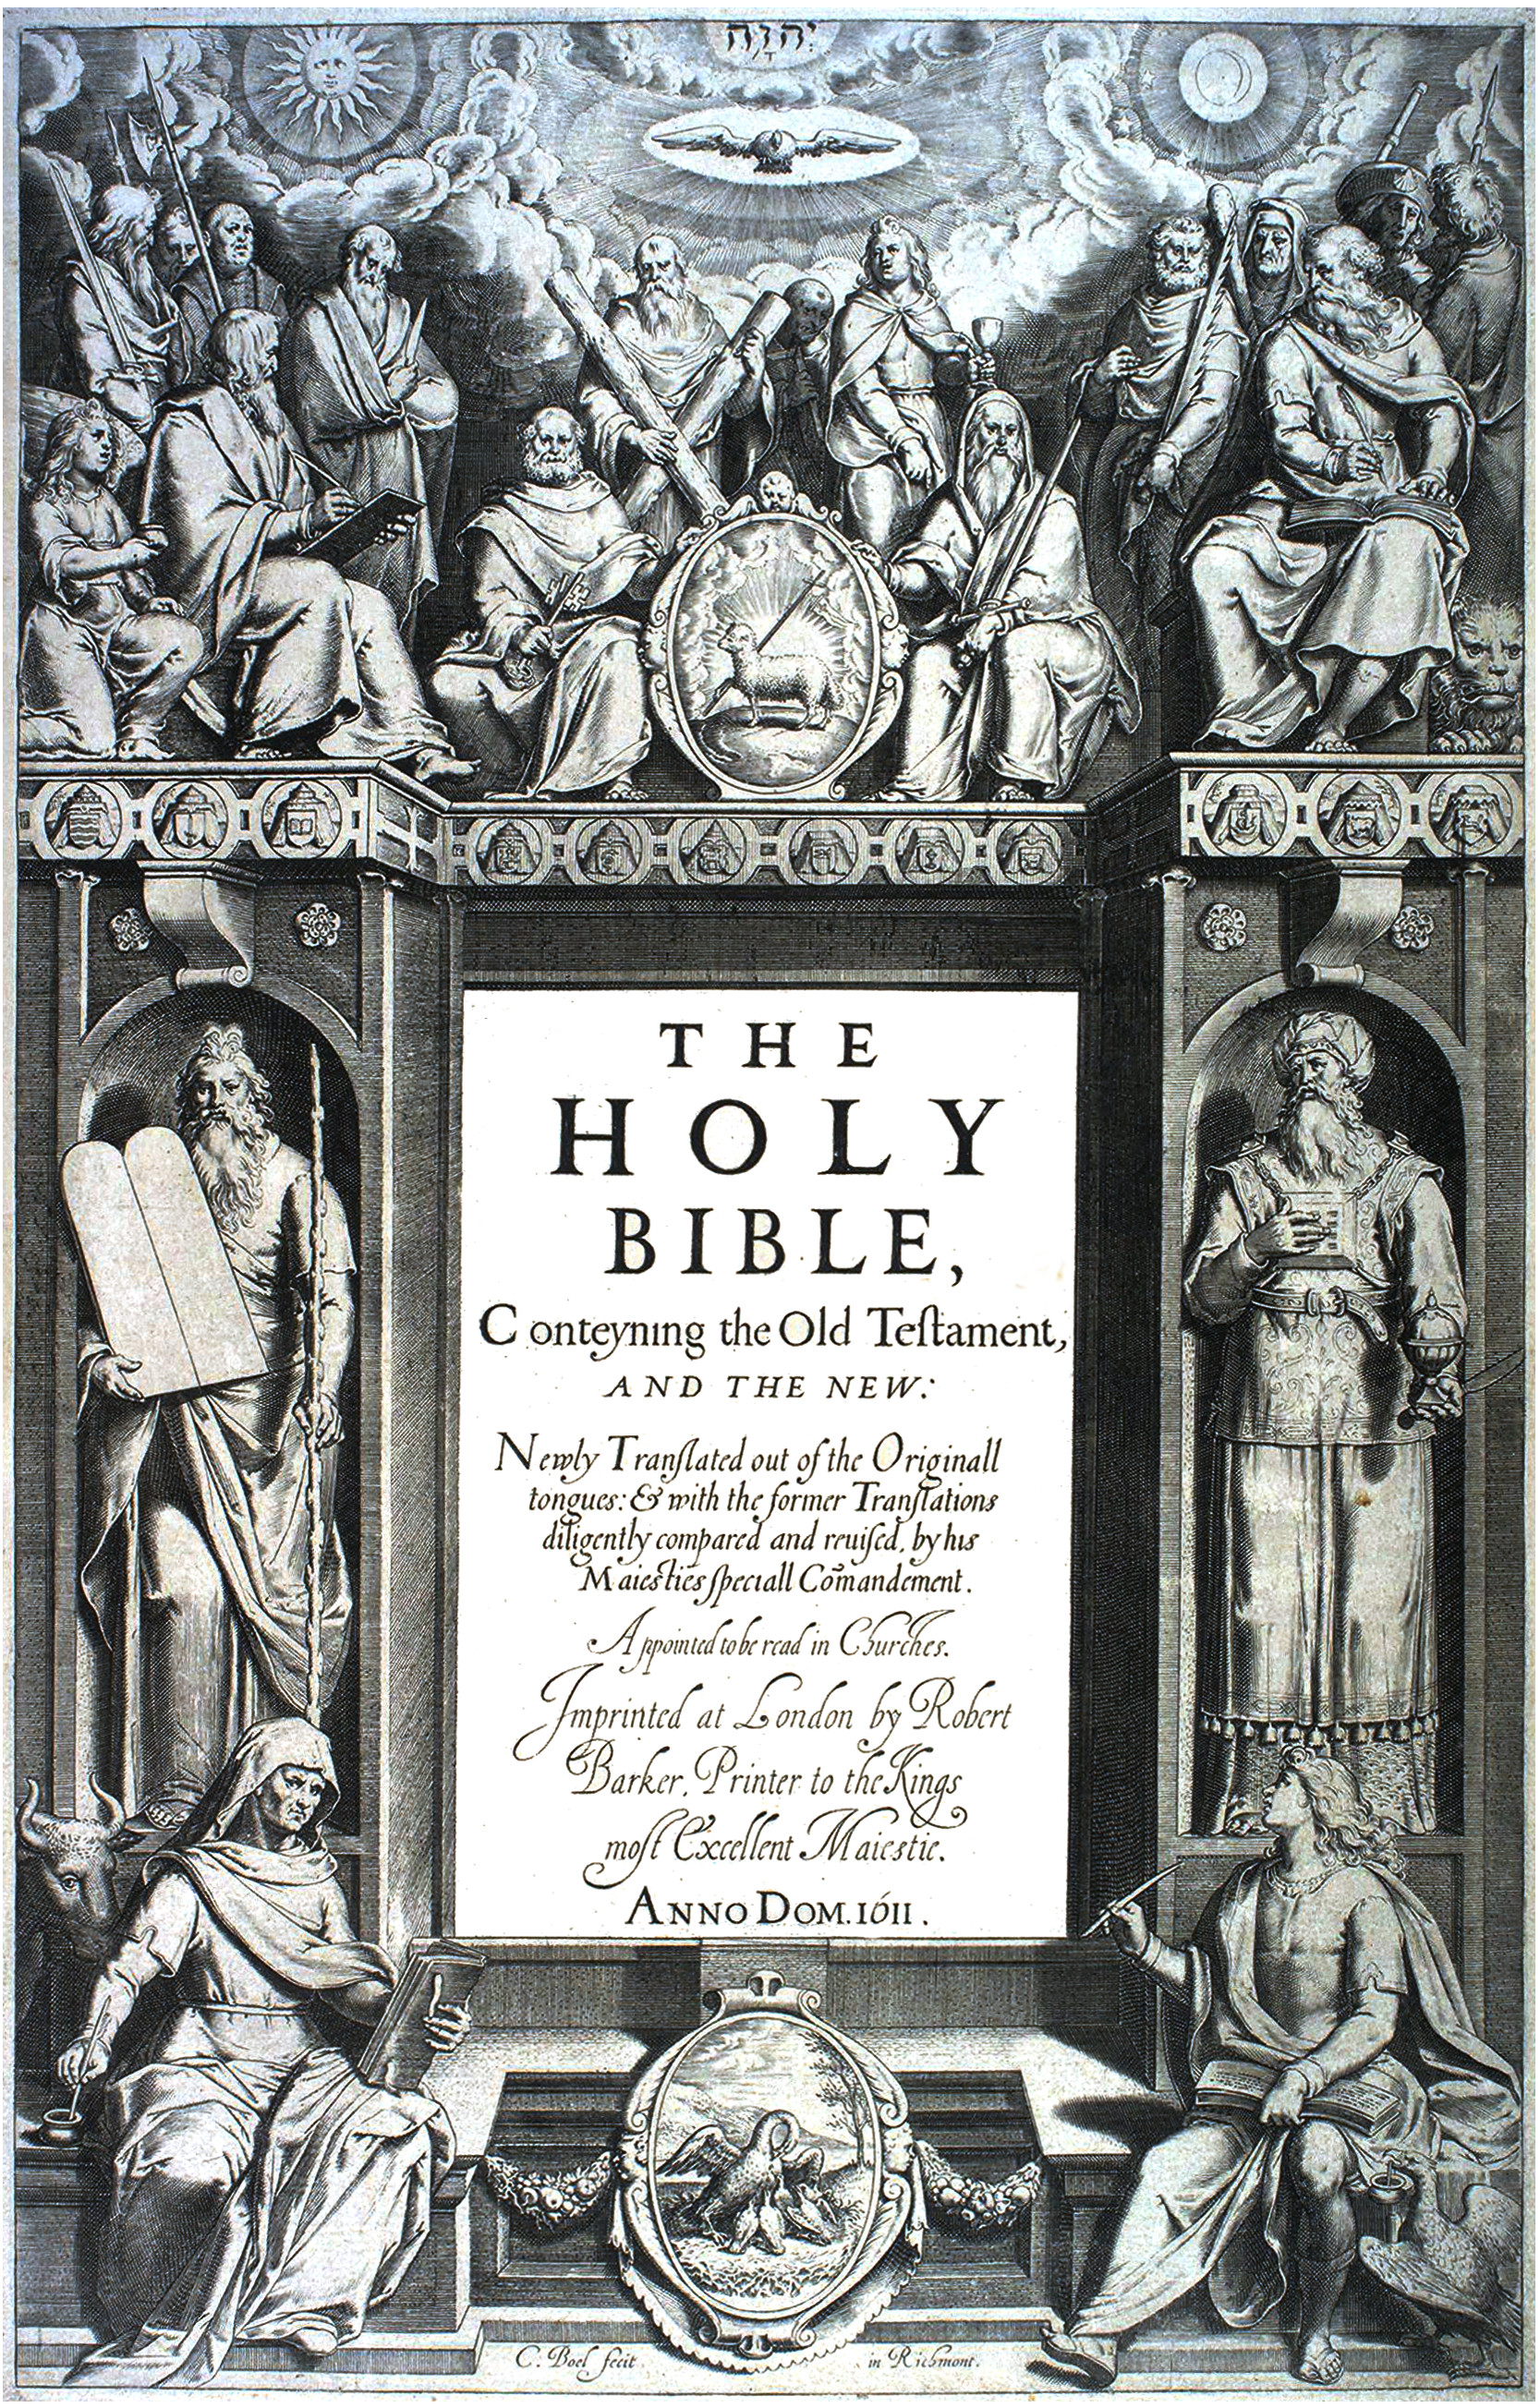 https://upload.wikimedia.org/wikipedia/commons/5/5d/KJV-King-James-Version-Bible-first-edition-title-page-1611.jpg